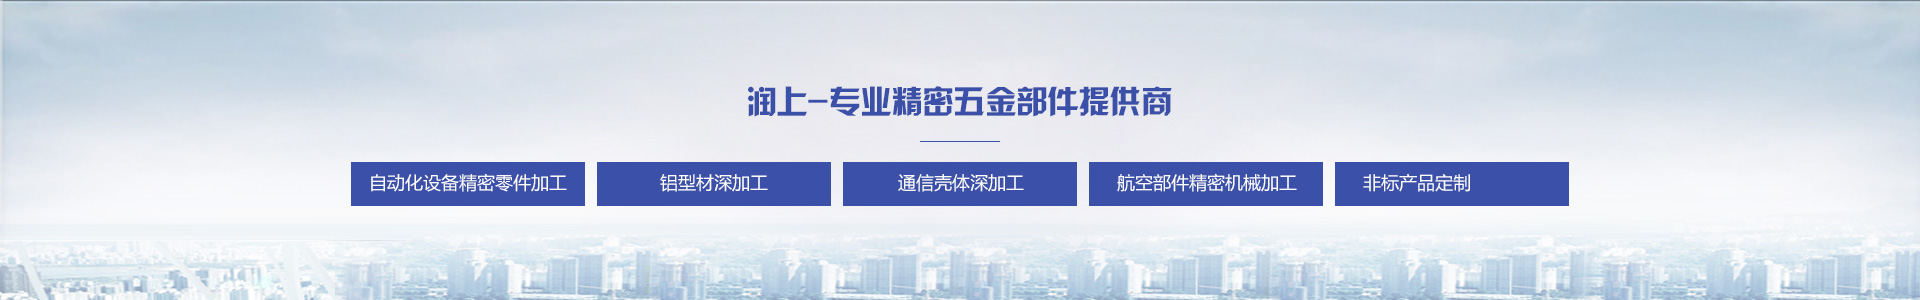 http://www.runsuntech.com.cn/data/upload/201912/20191225160023_790.jpg